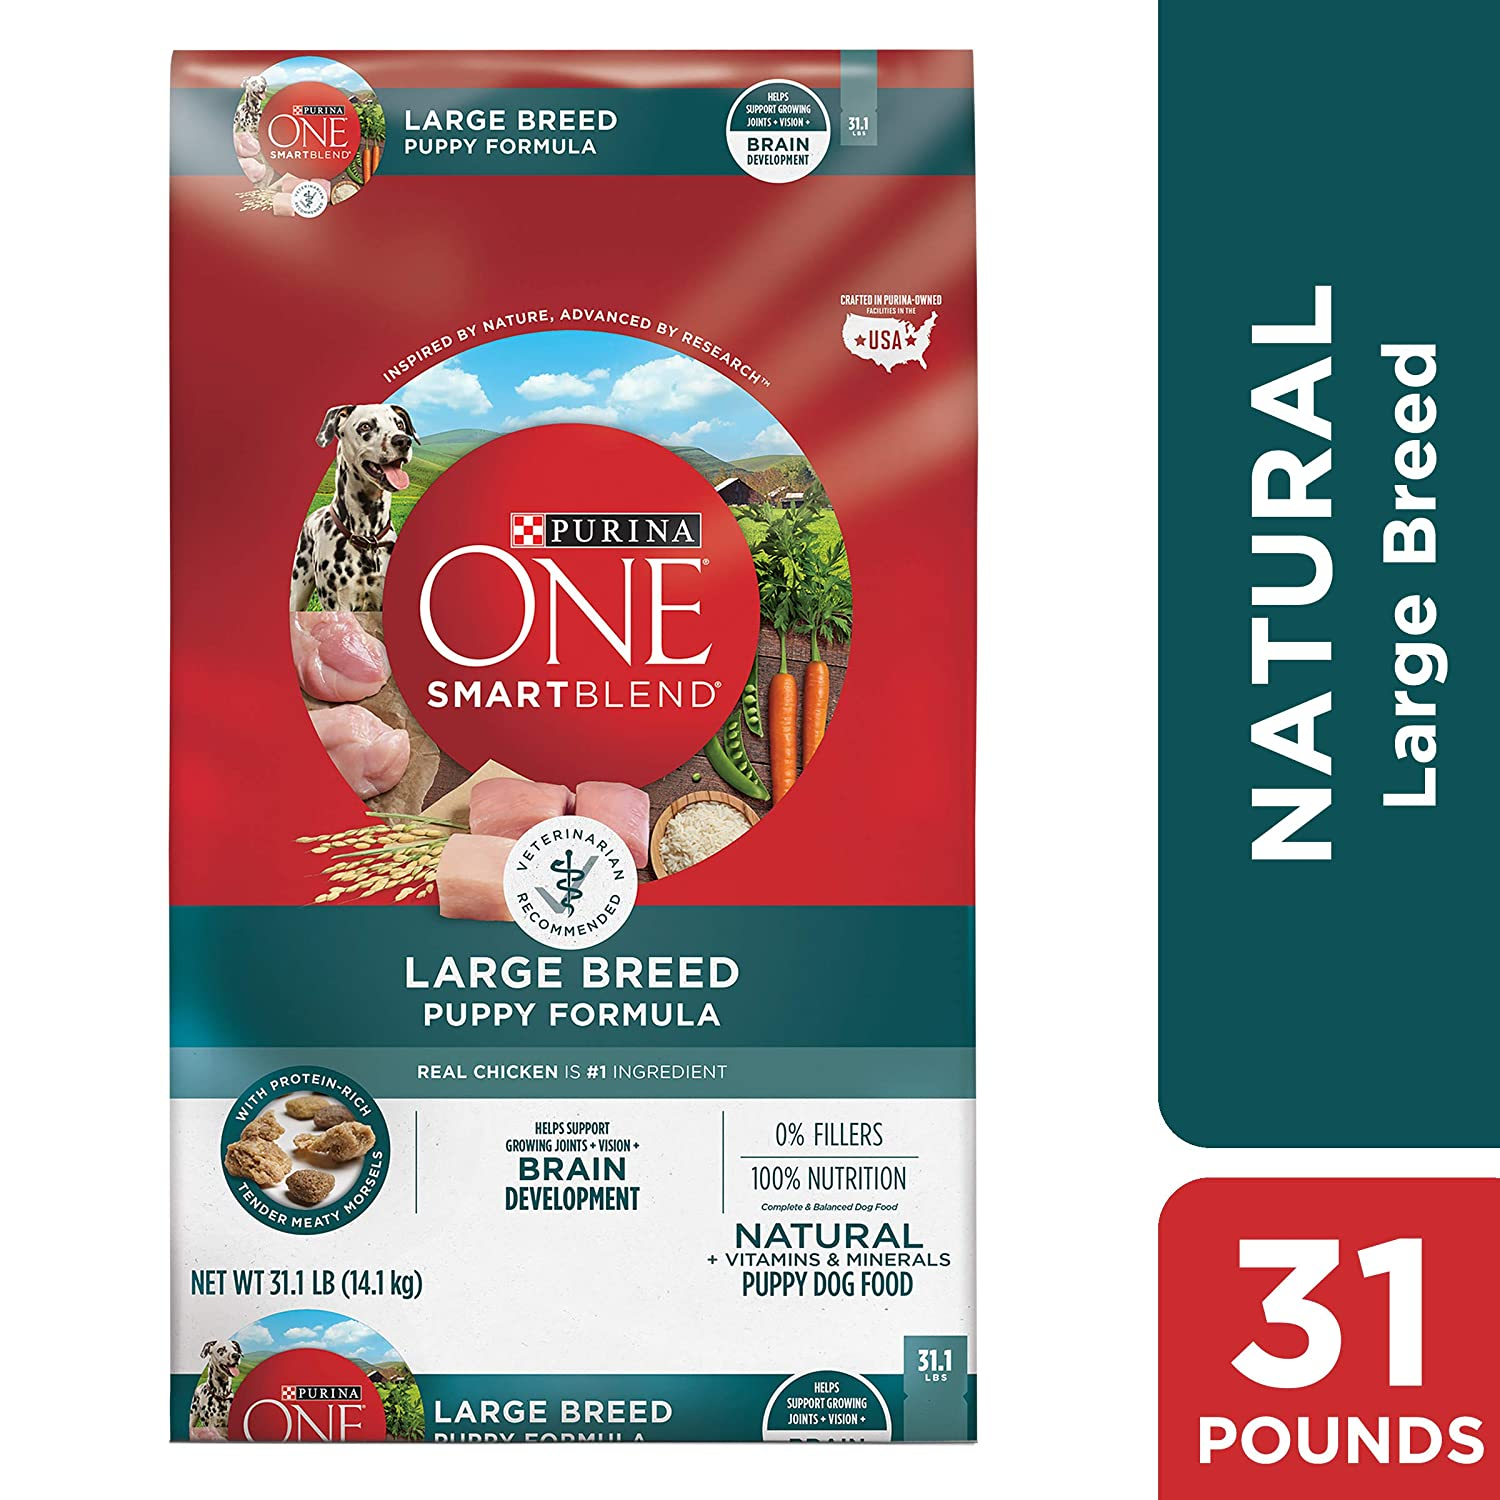 8. Purina ONE SmartBlend Large Breed Puppy Formula Dry Dog Food